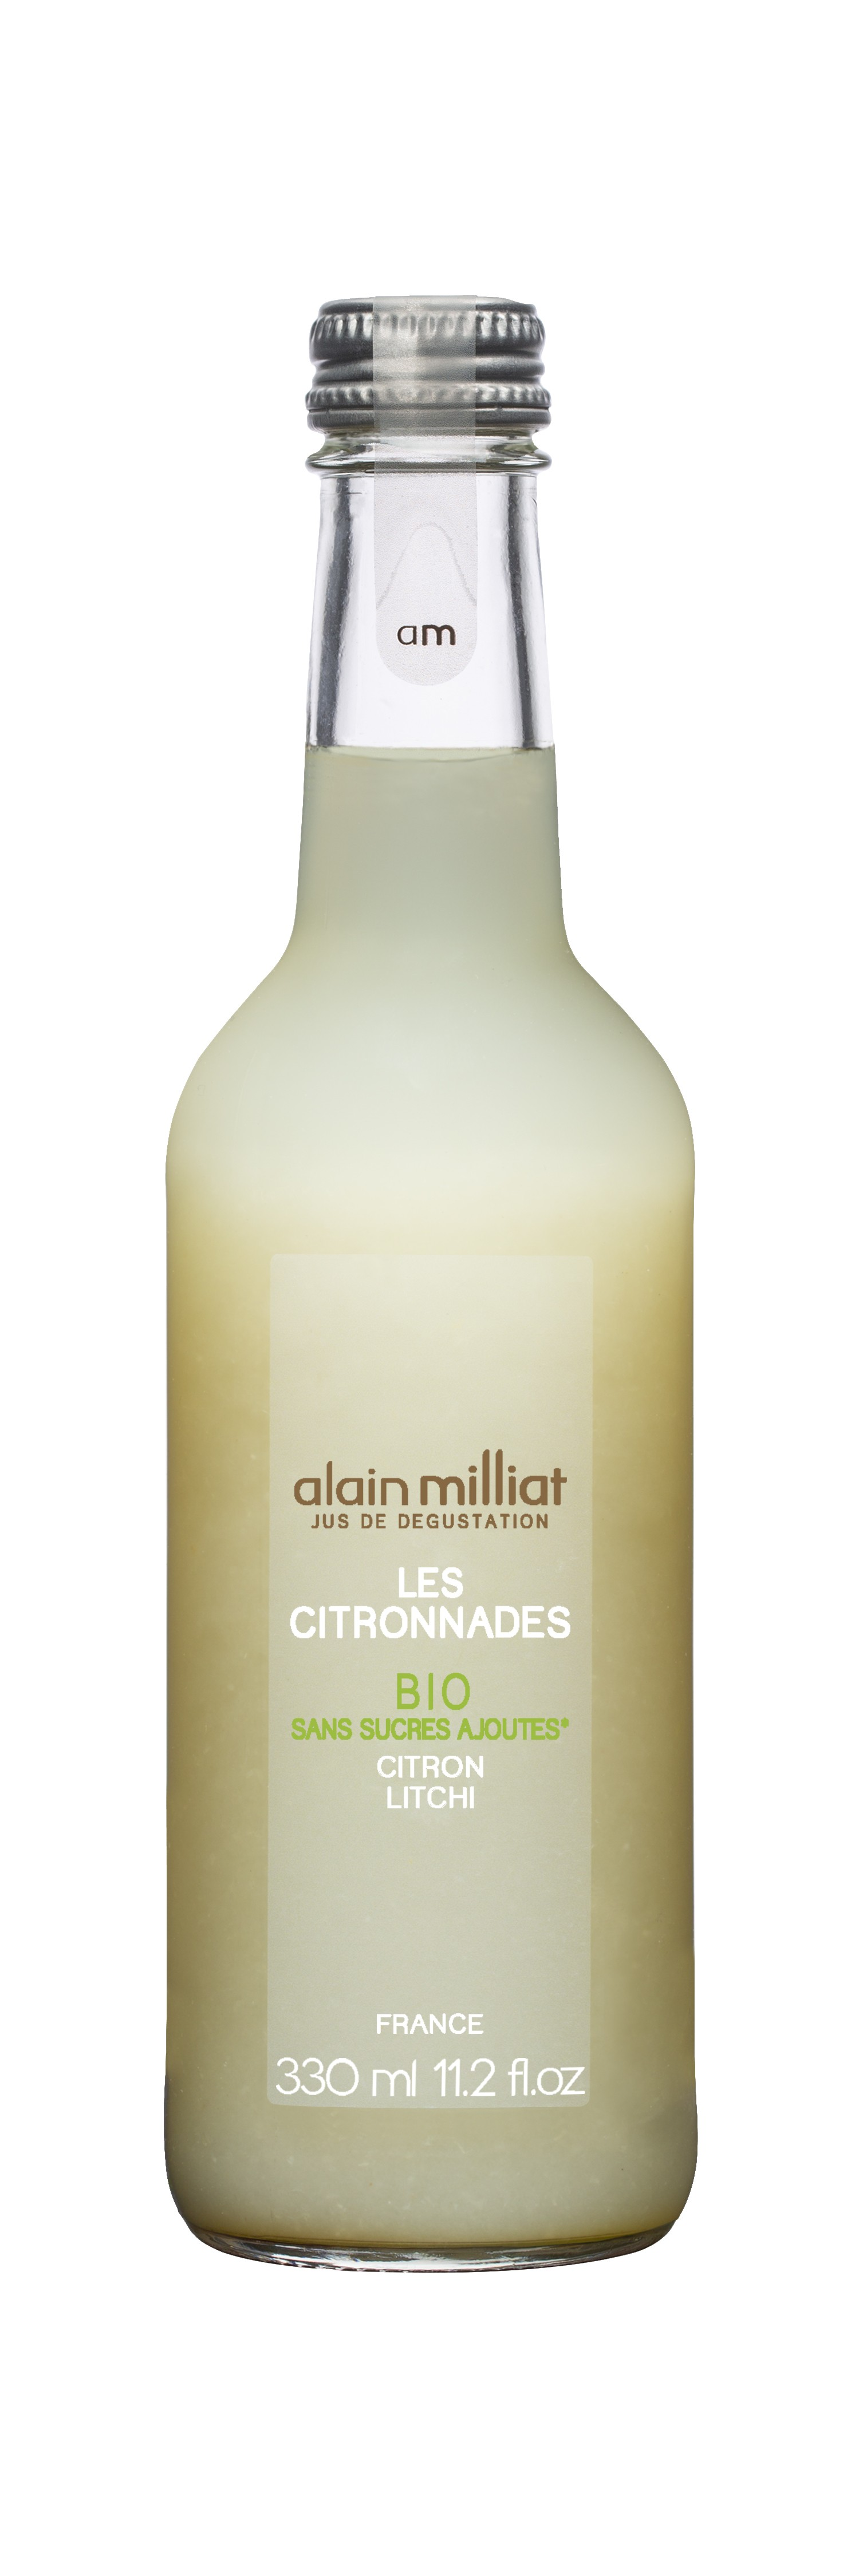 Citronnade Citron - Litchi BIO, Alain Milliat (33 cl)